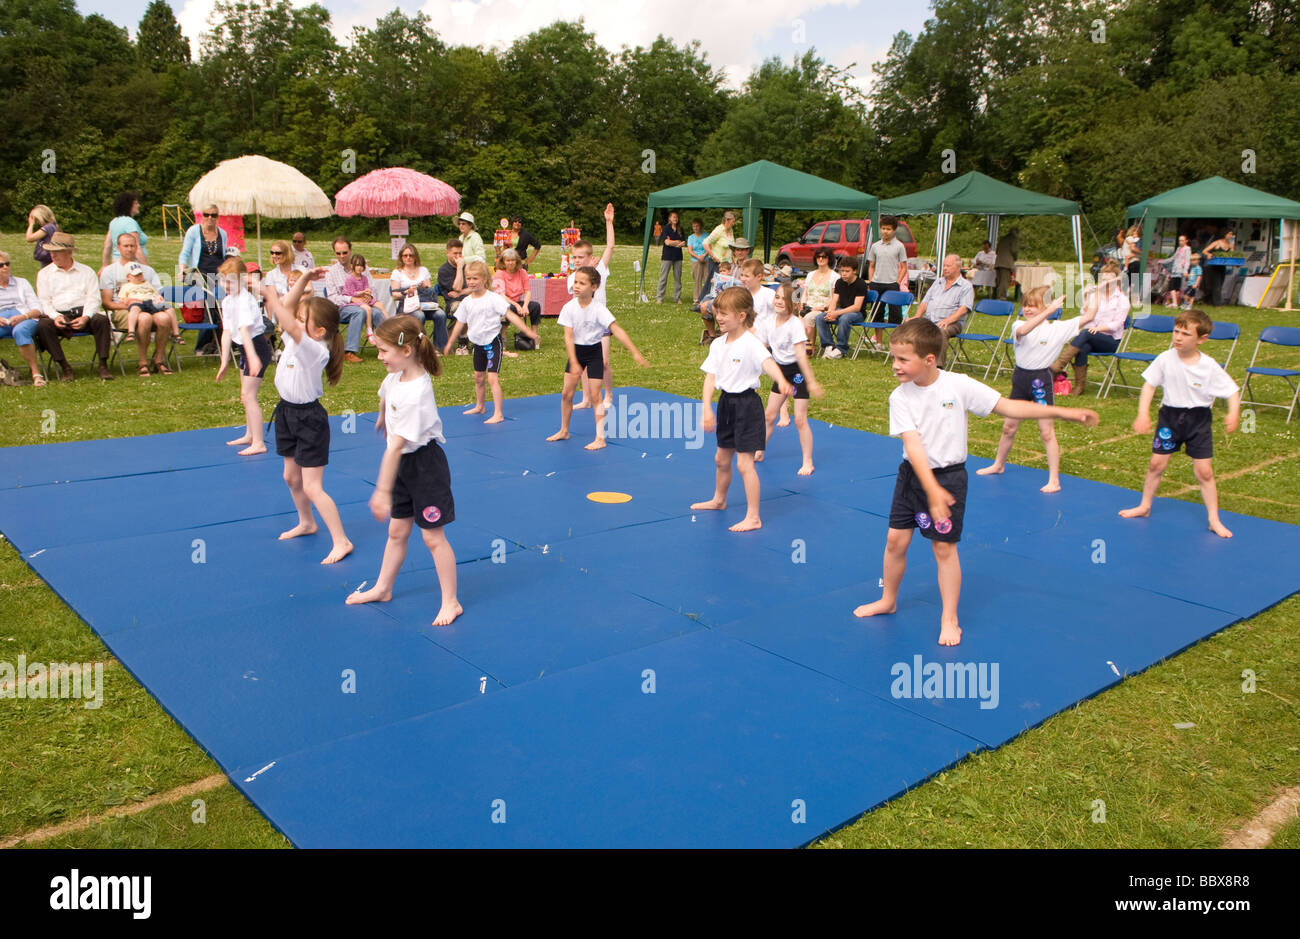 Key stage 1 gym club giving a demonstration at a school summer fete, Medstead, near Alton, Hampshire, UK. - Stock Image